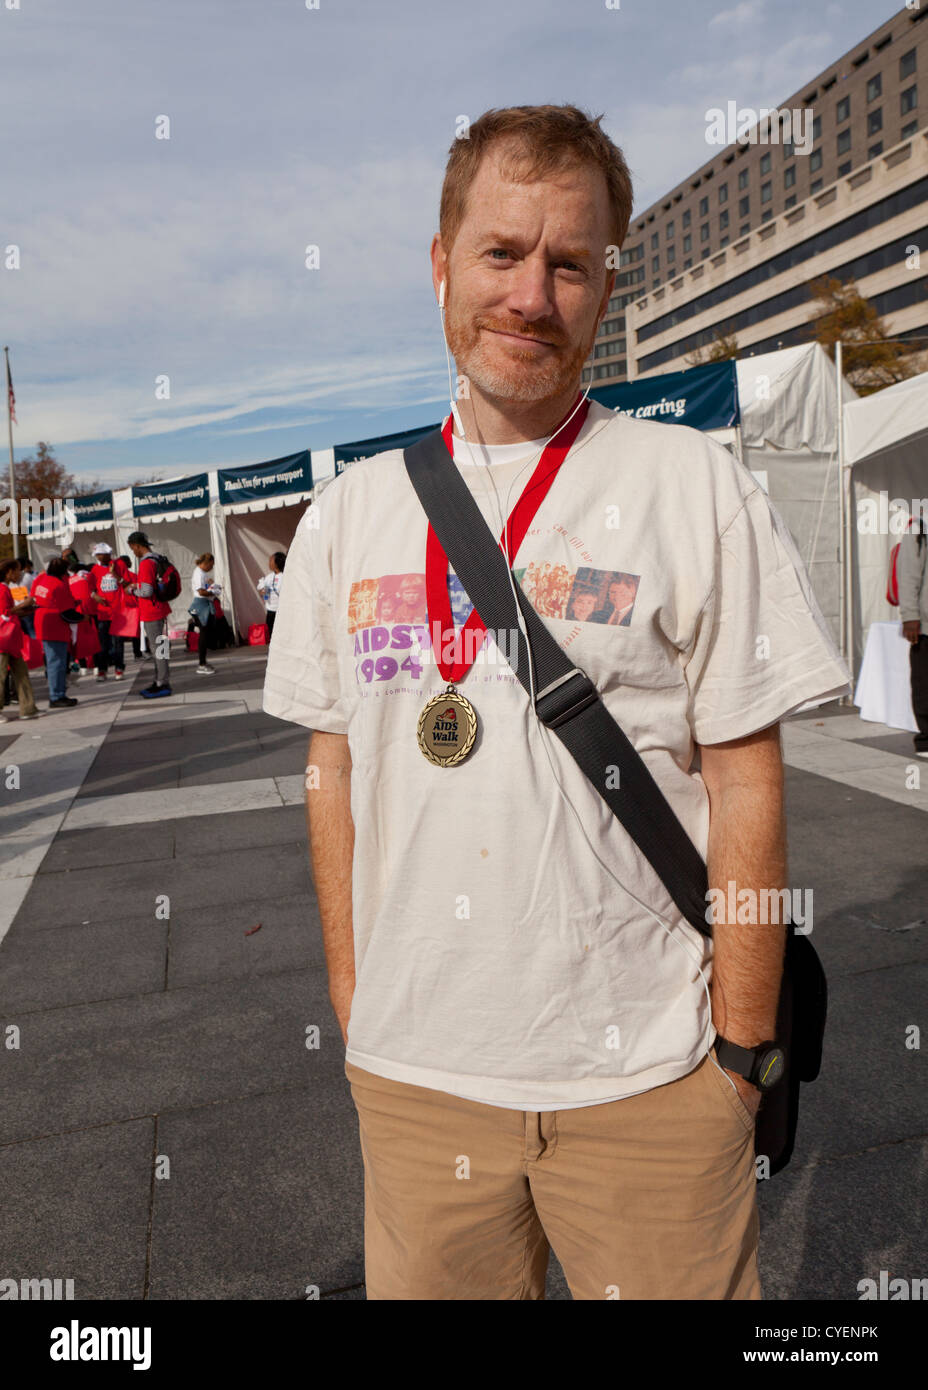 Caucasian male participant at the National AIDS Walk - Washington, DC - Stock Image